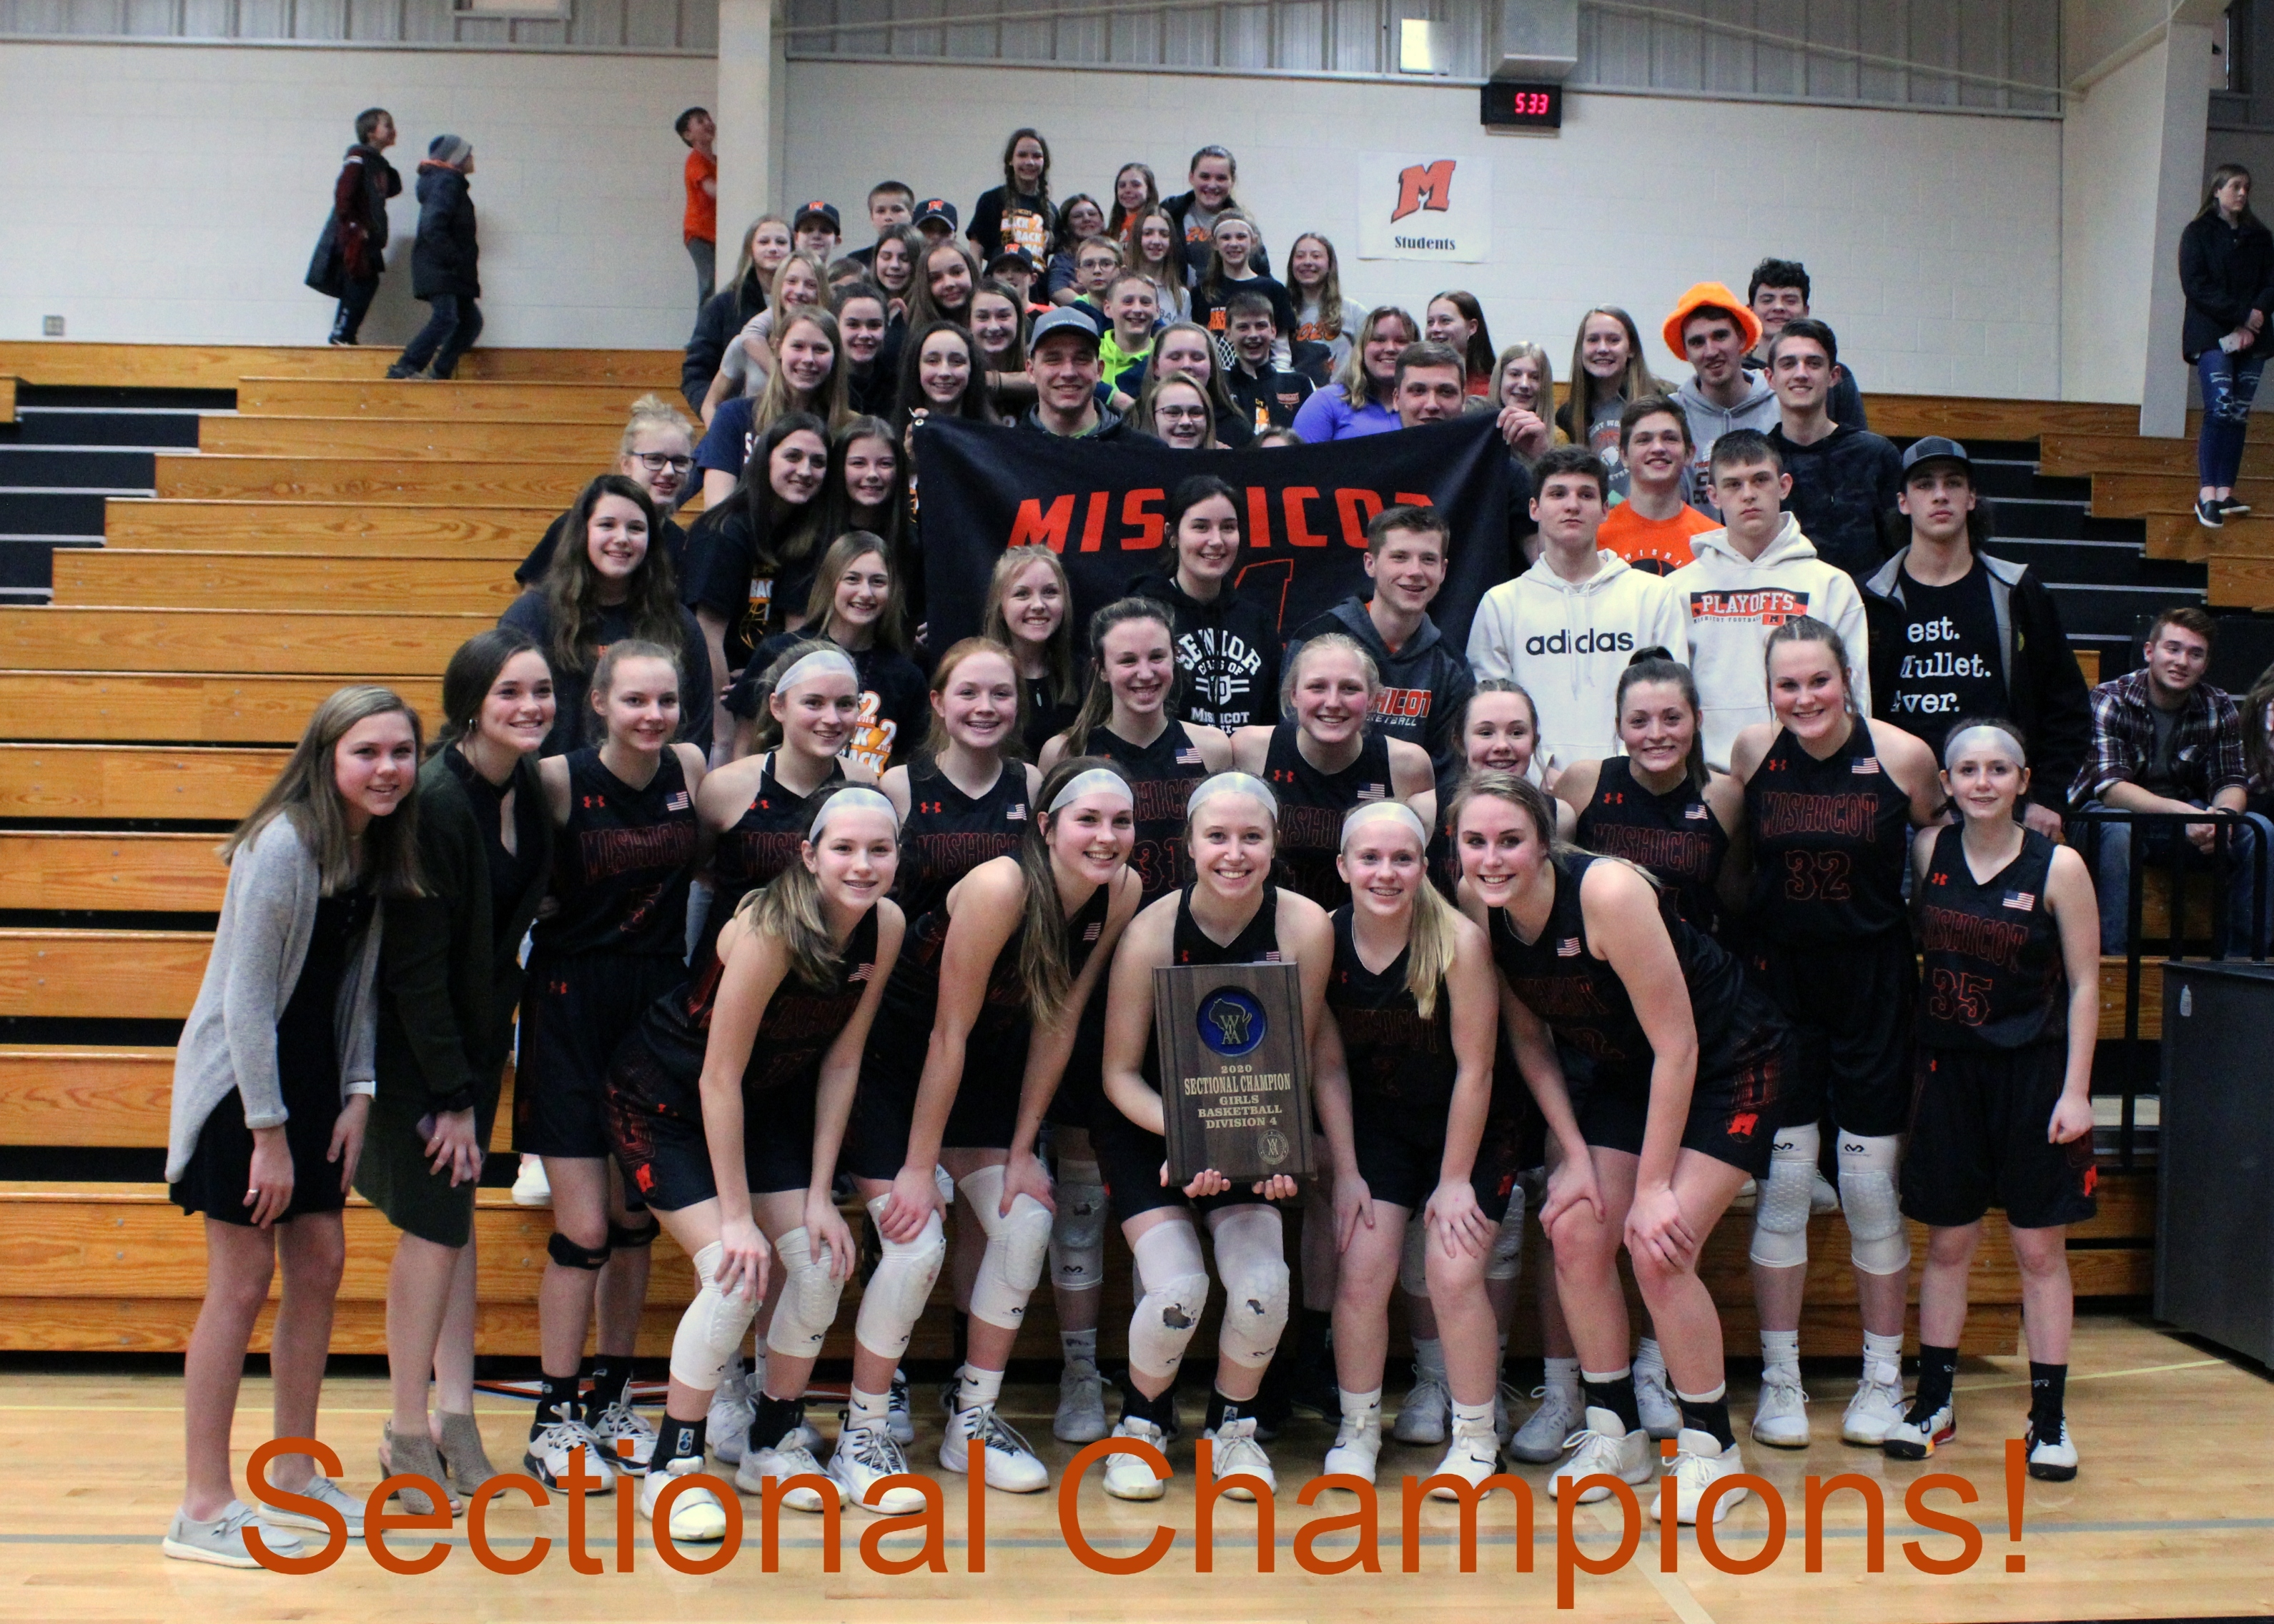 Sectional Champions!